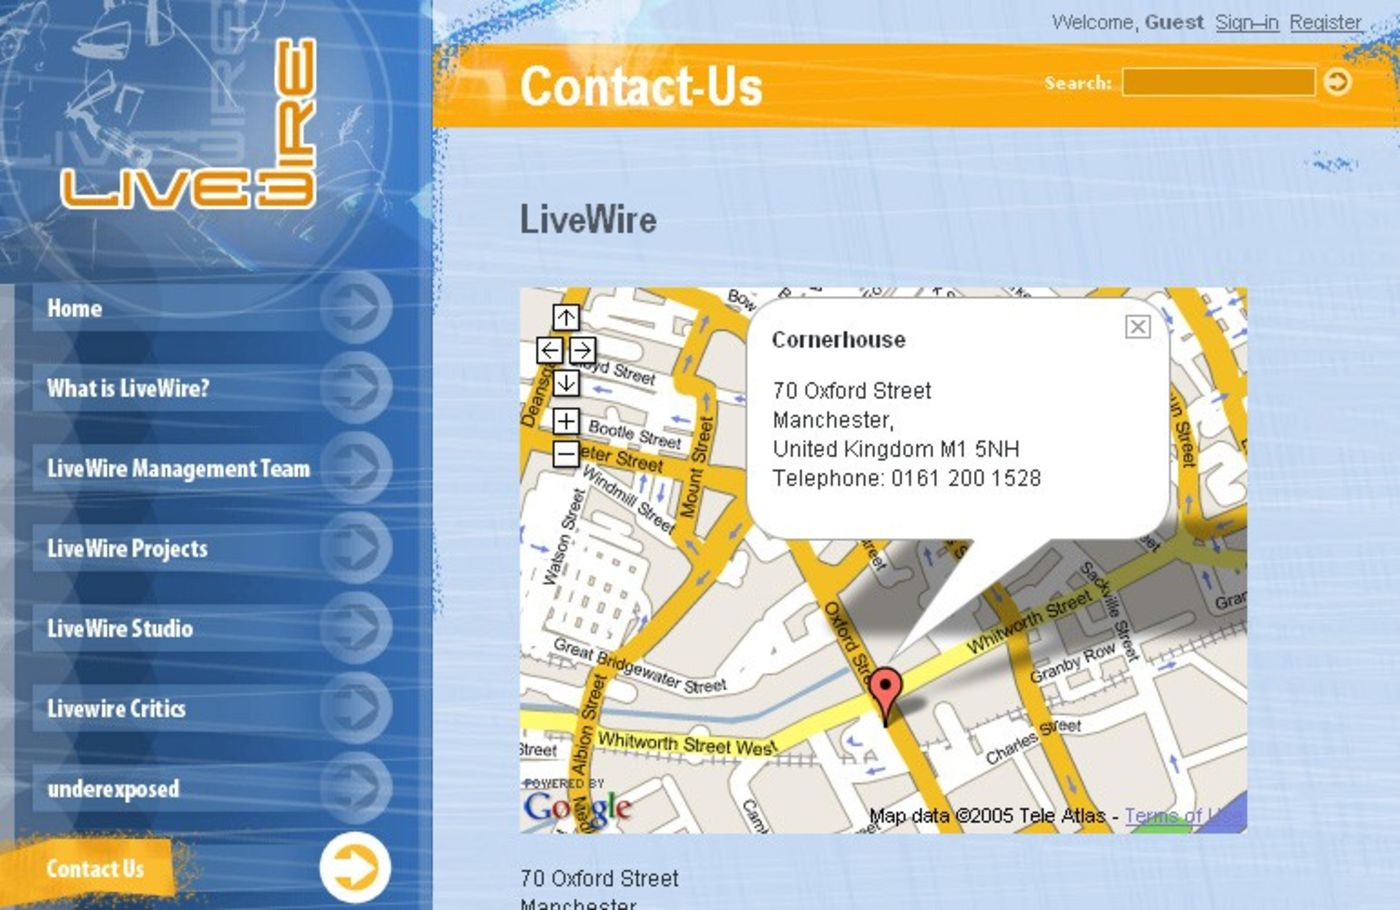 LiveWire Contact us